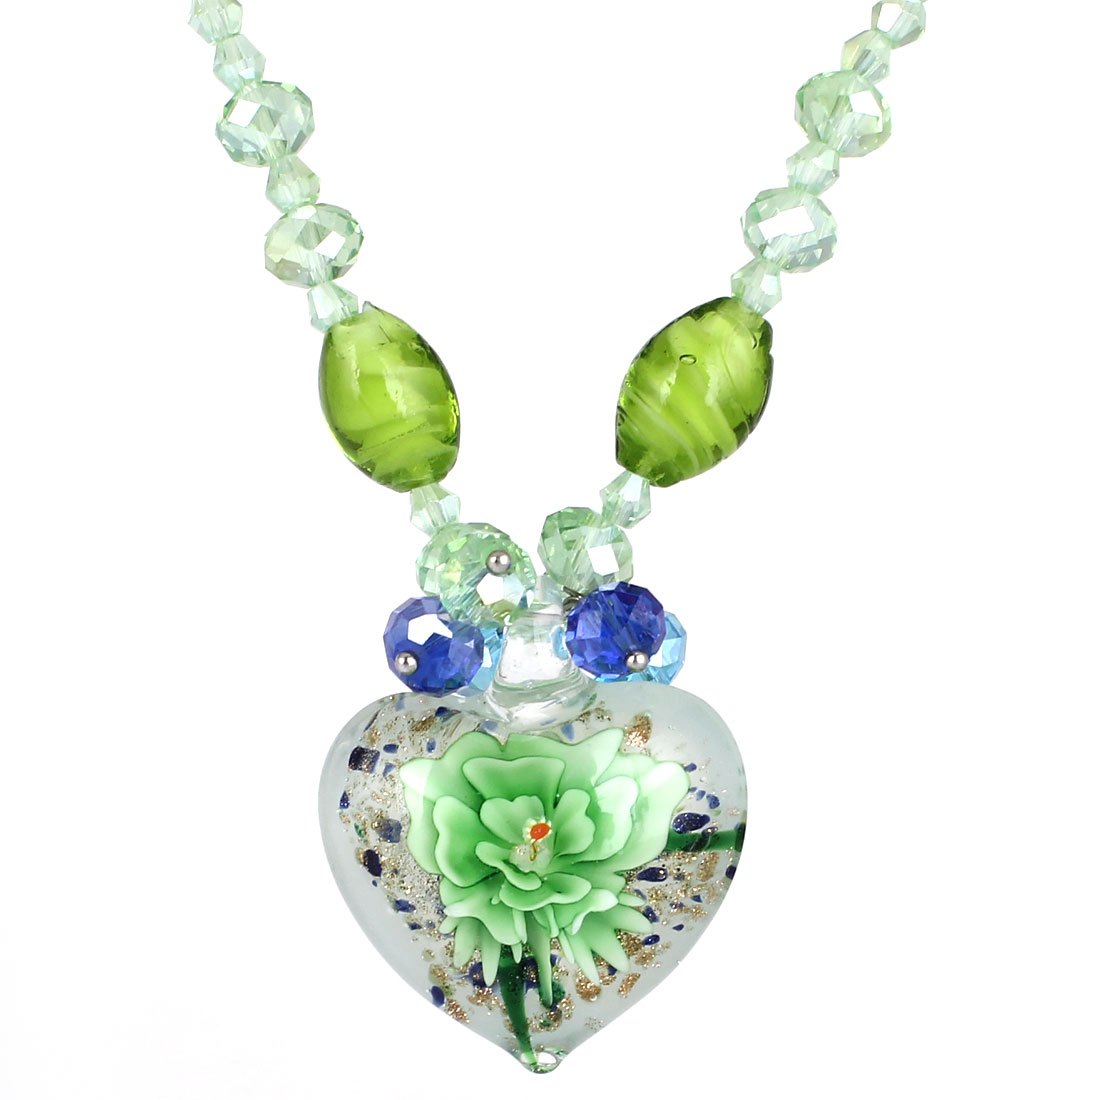 Green Rhinestone Inlaid Neck String White Heart Booming Flower Glass Pendant Necklace for Lady